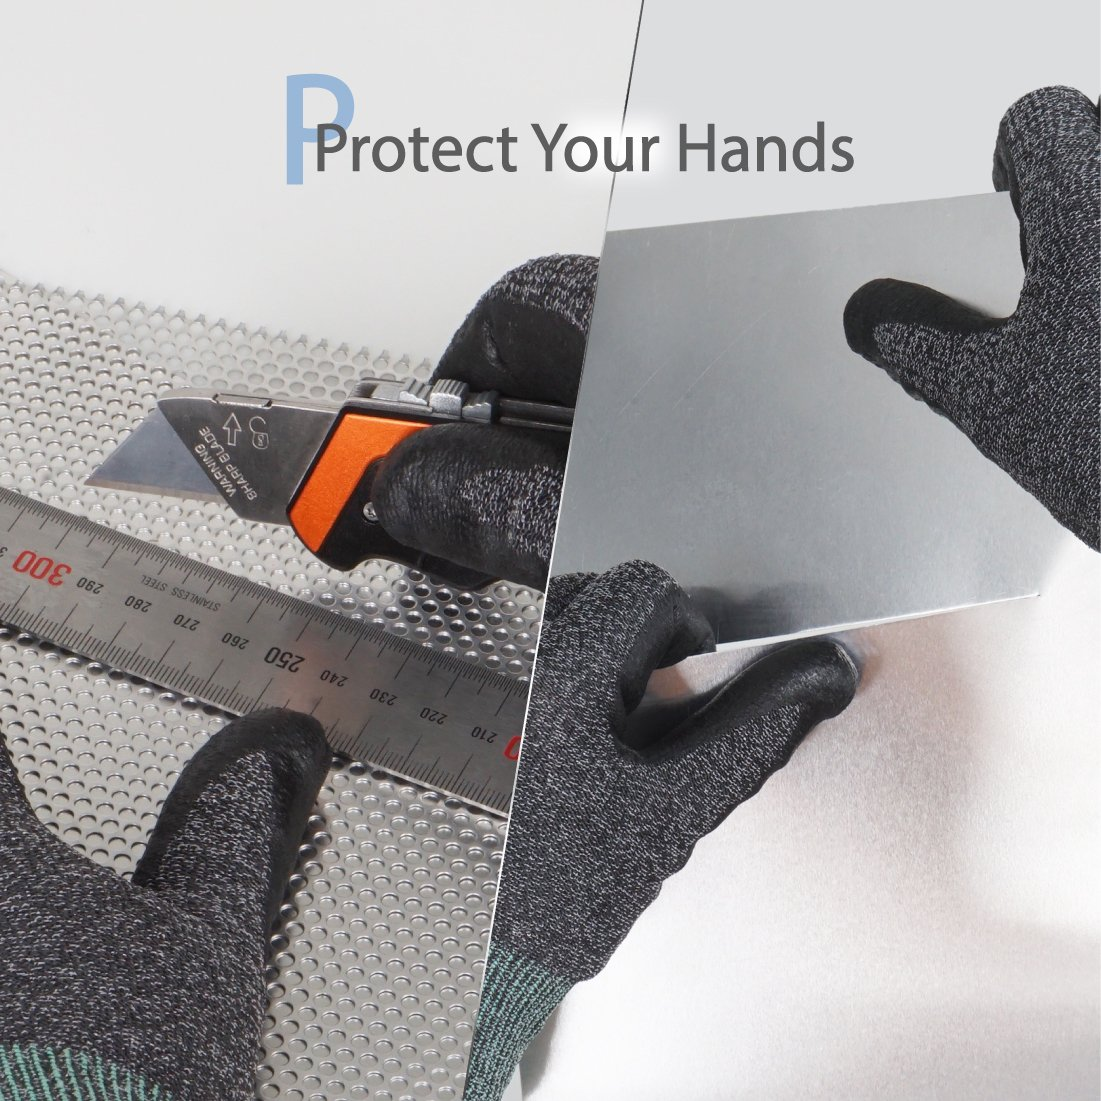 DEX FIT Utility 3D Cut Safety Gloves CR533, Comfort Stretch Fit, Power Grip, Smart Touch, Thin & Lightweight, Washable… 4